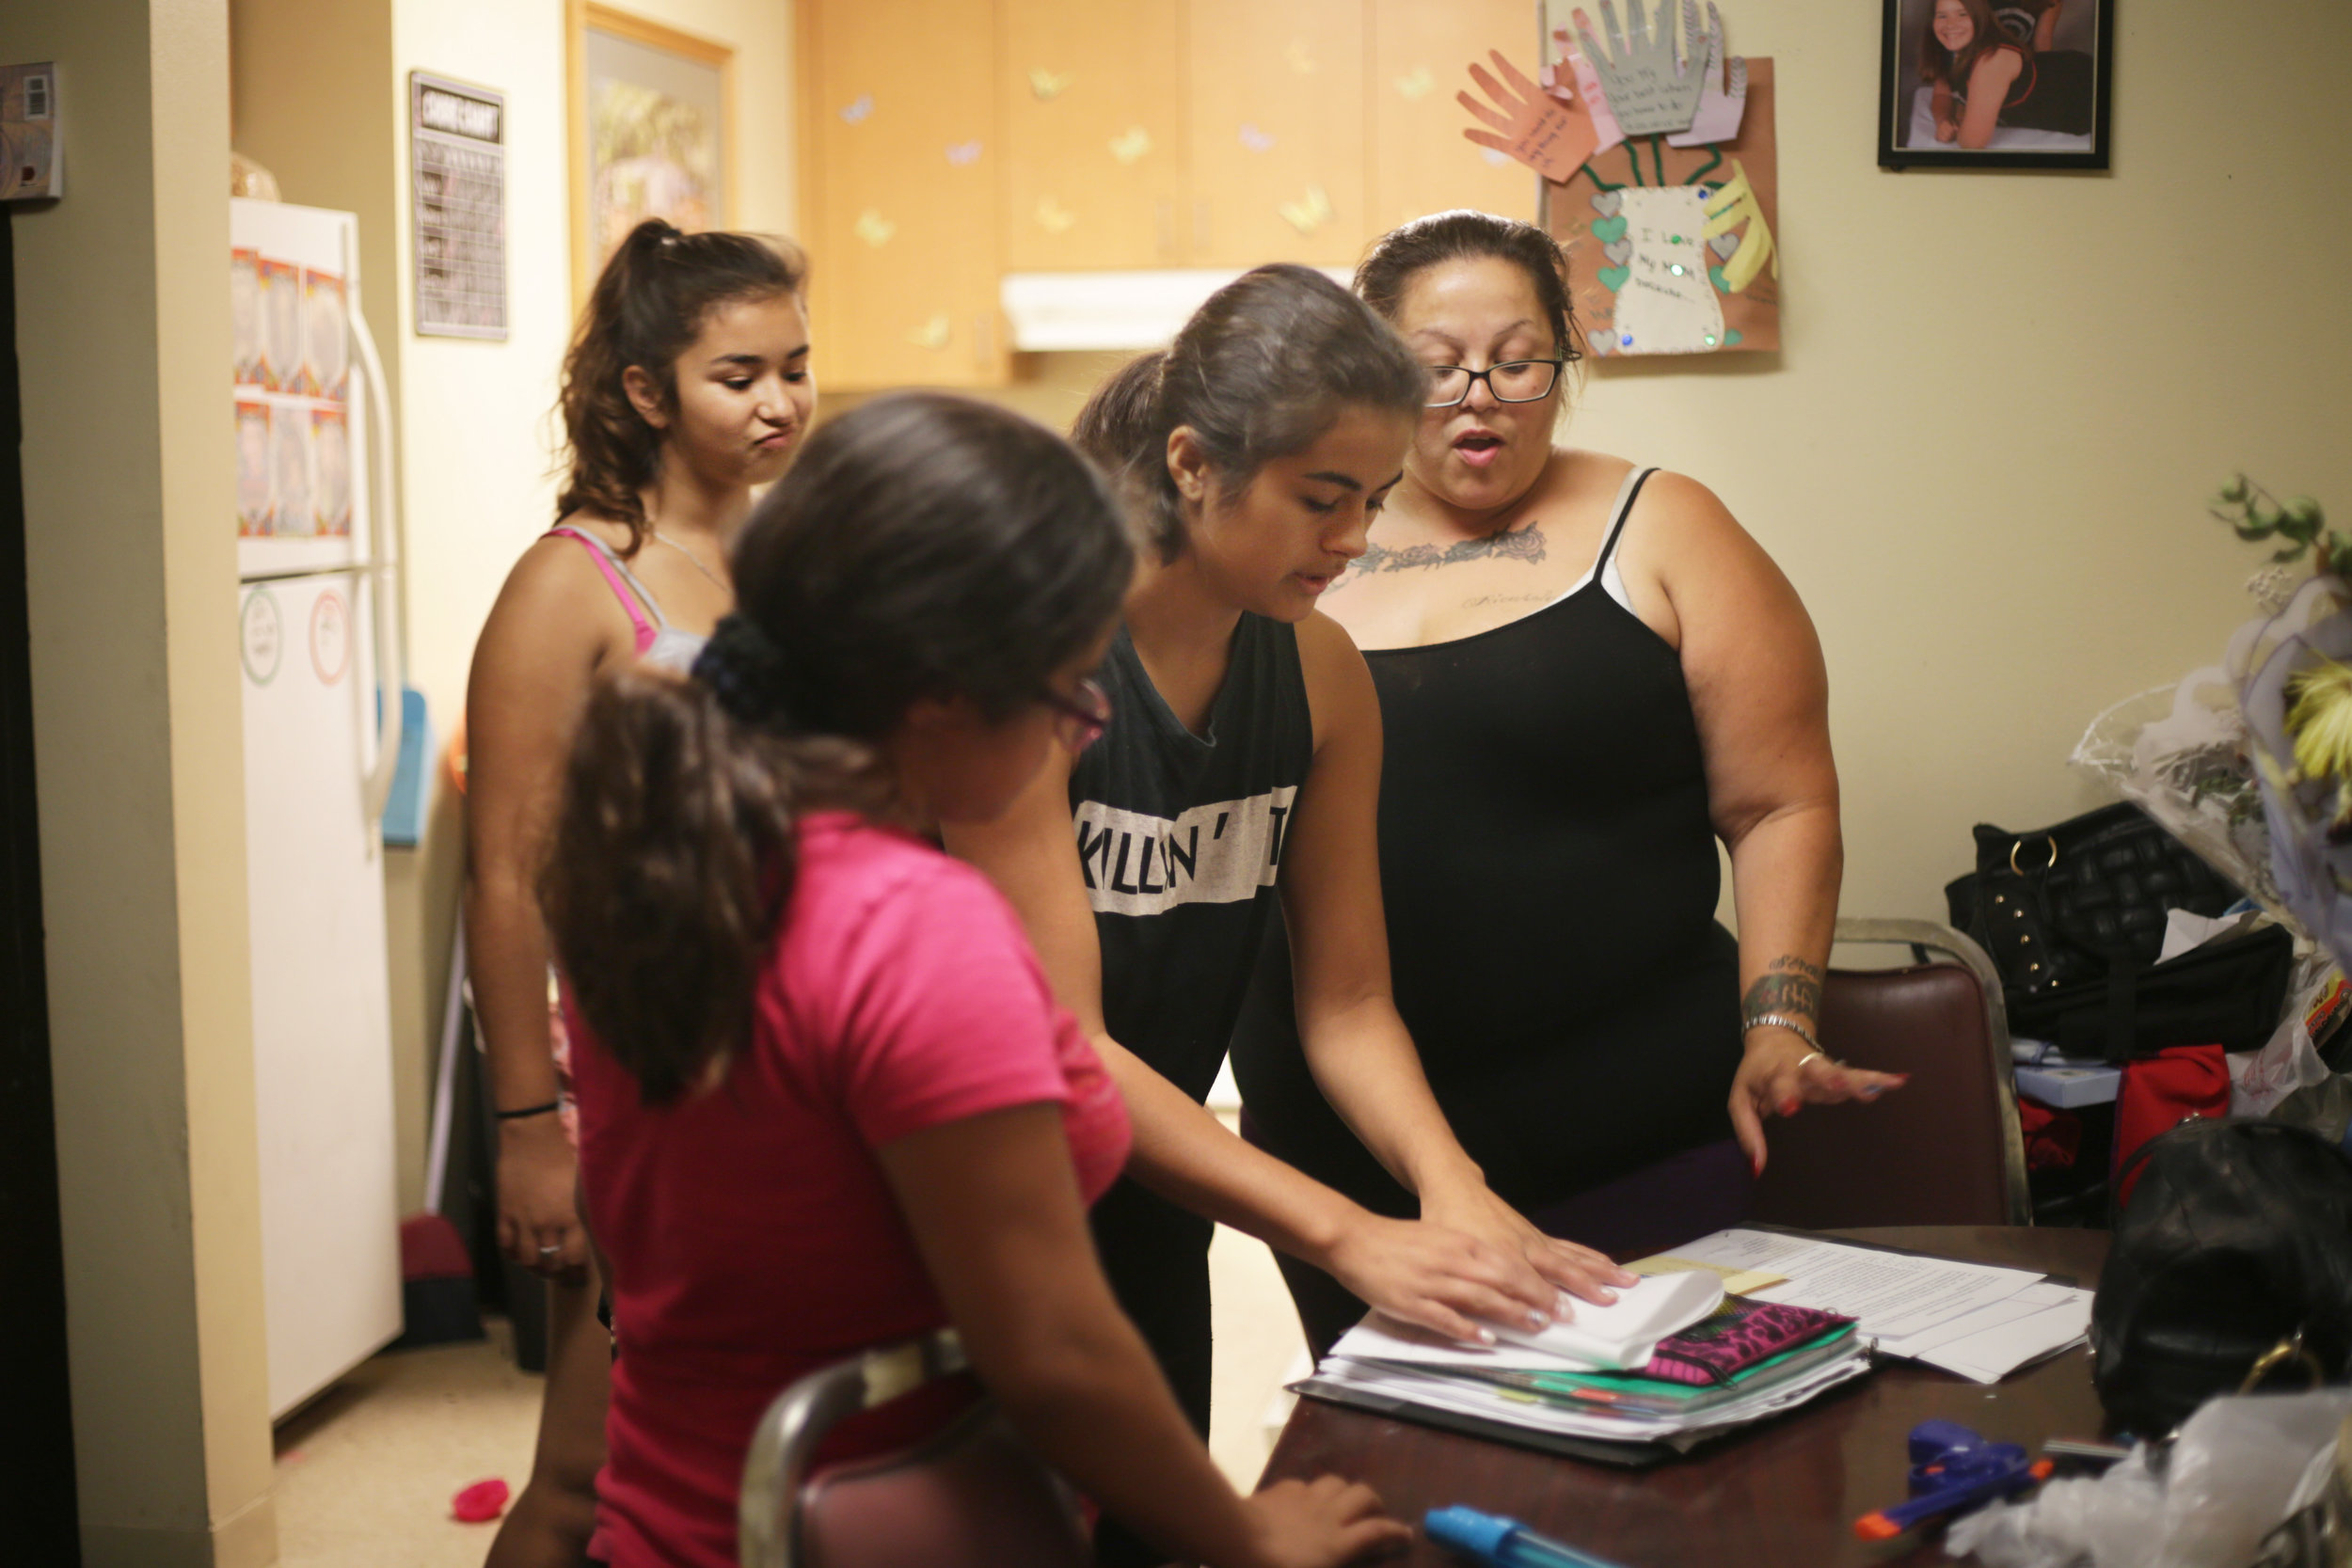 Karina 10, Rios's niece, her daughters Mona, 18, and Viviana, 14, help Rios with her school project. Rios decided to go back to school to become a drug an alcohol counselor after being addicted to drugs for many years.